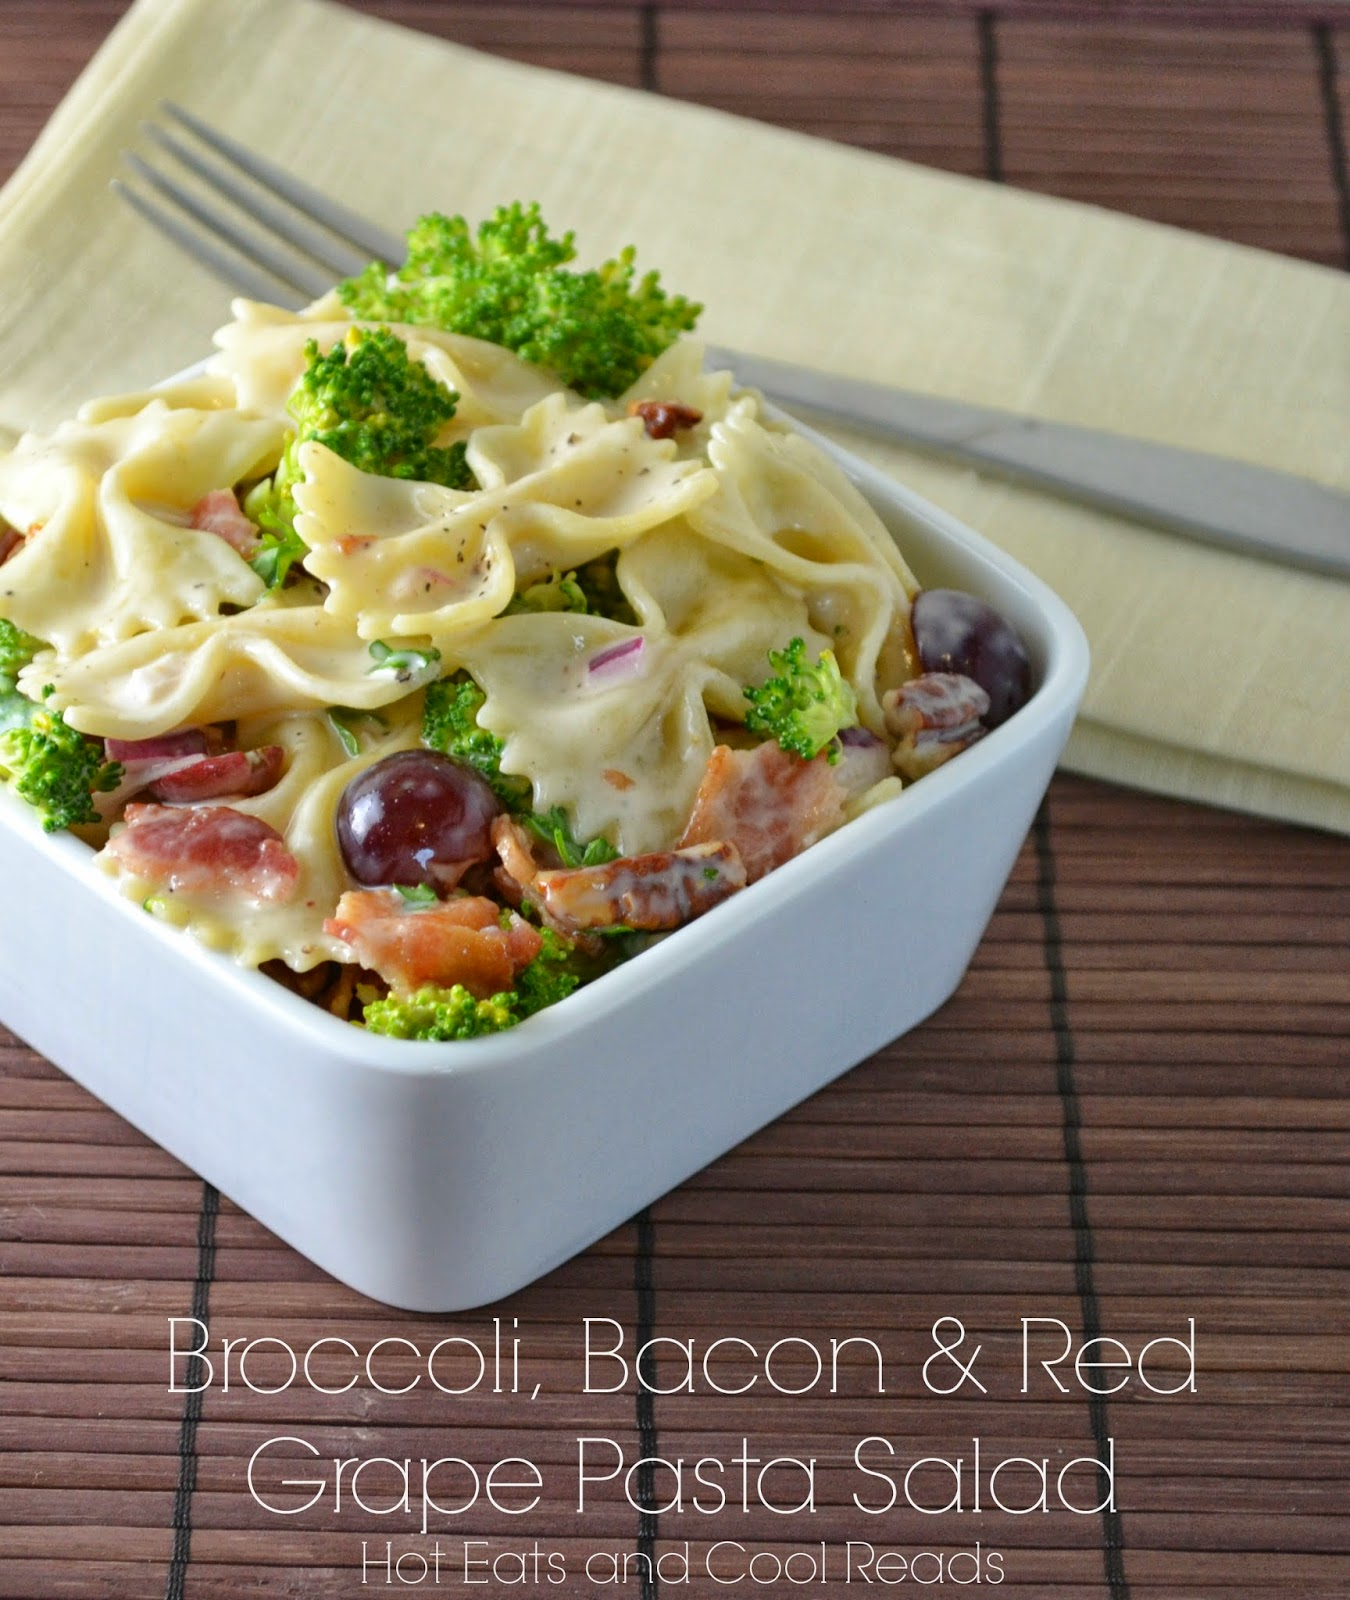 Broccoli, Bacon and Red Grape Pasta Salad - Bacon Recipes: 10 Tasty Recipes With Bacon | Cheap Is The New Classy